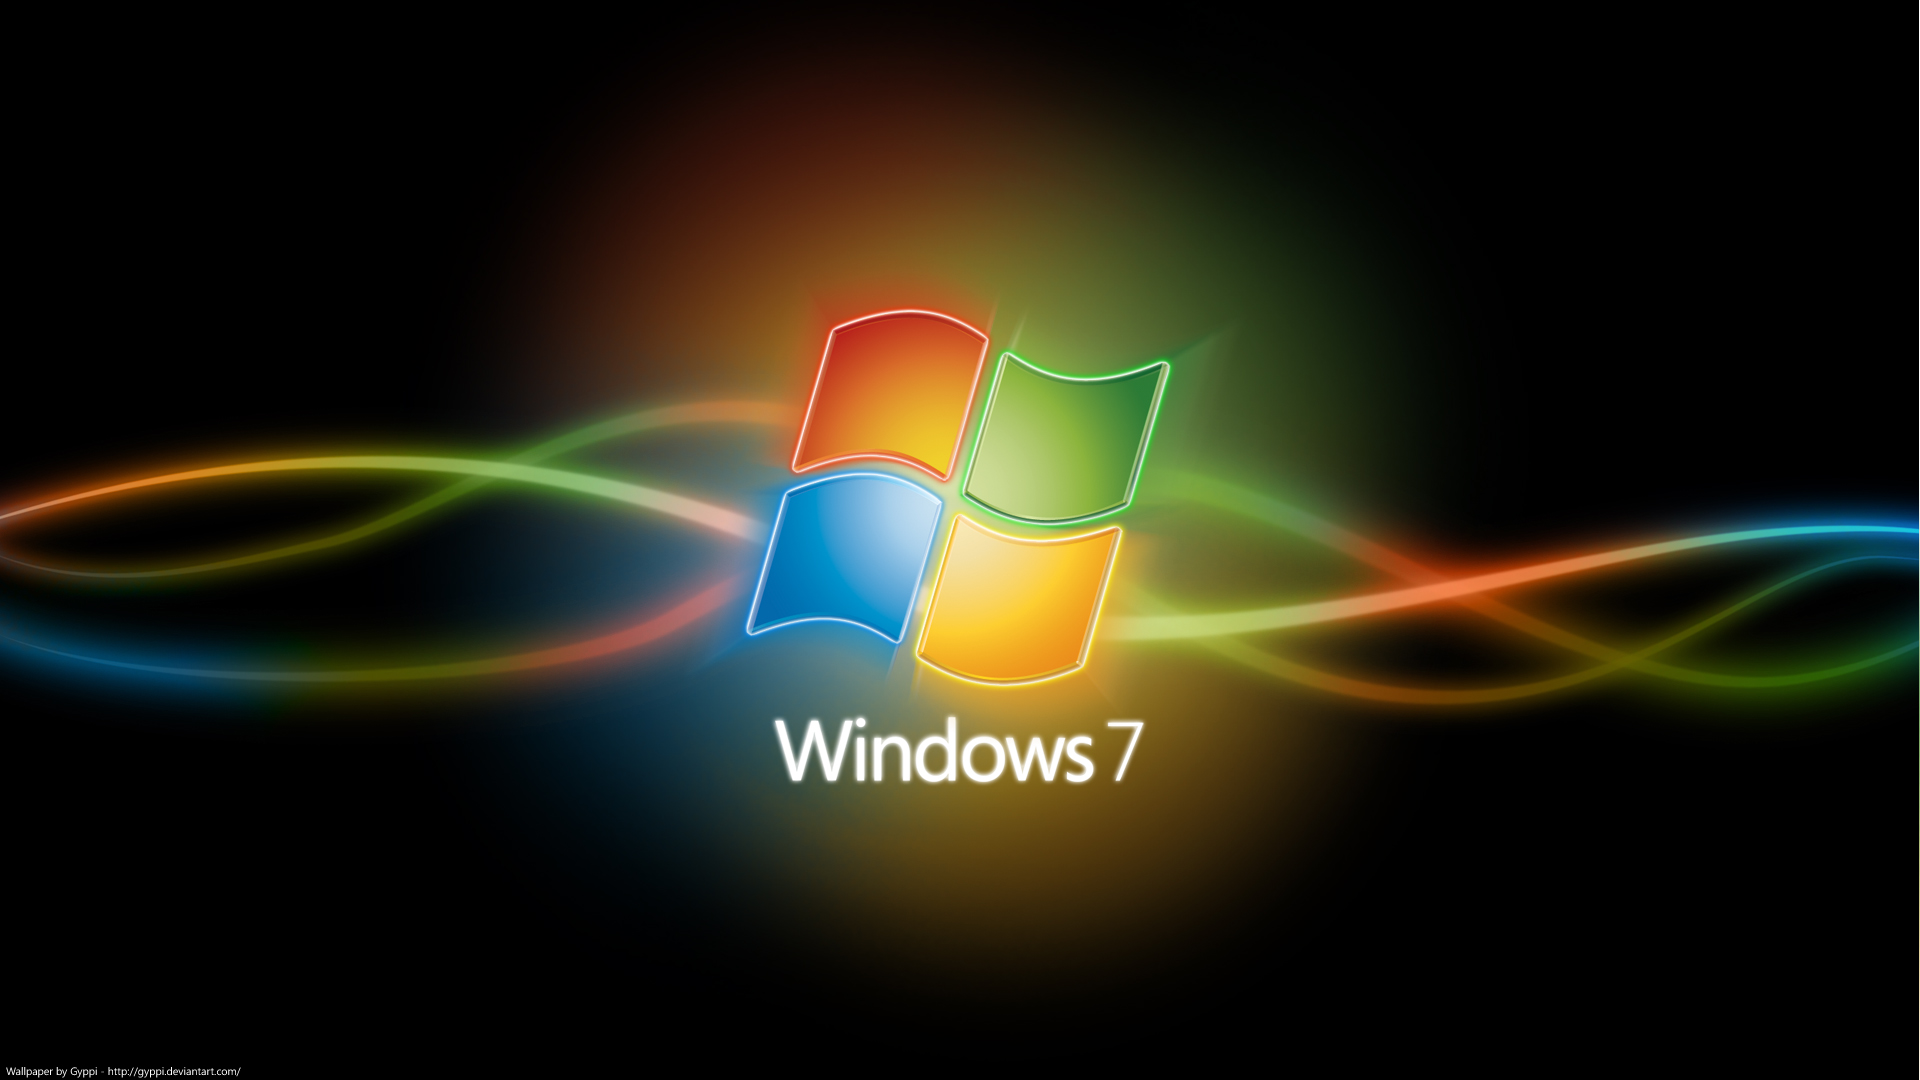 Hd wallpaper windows 7 - Hd Wallpaper Windows 7 31